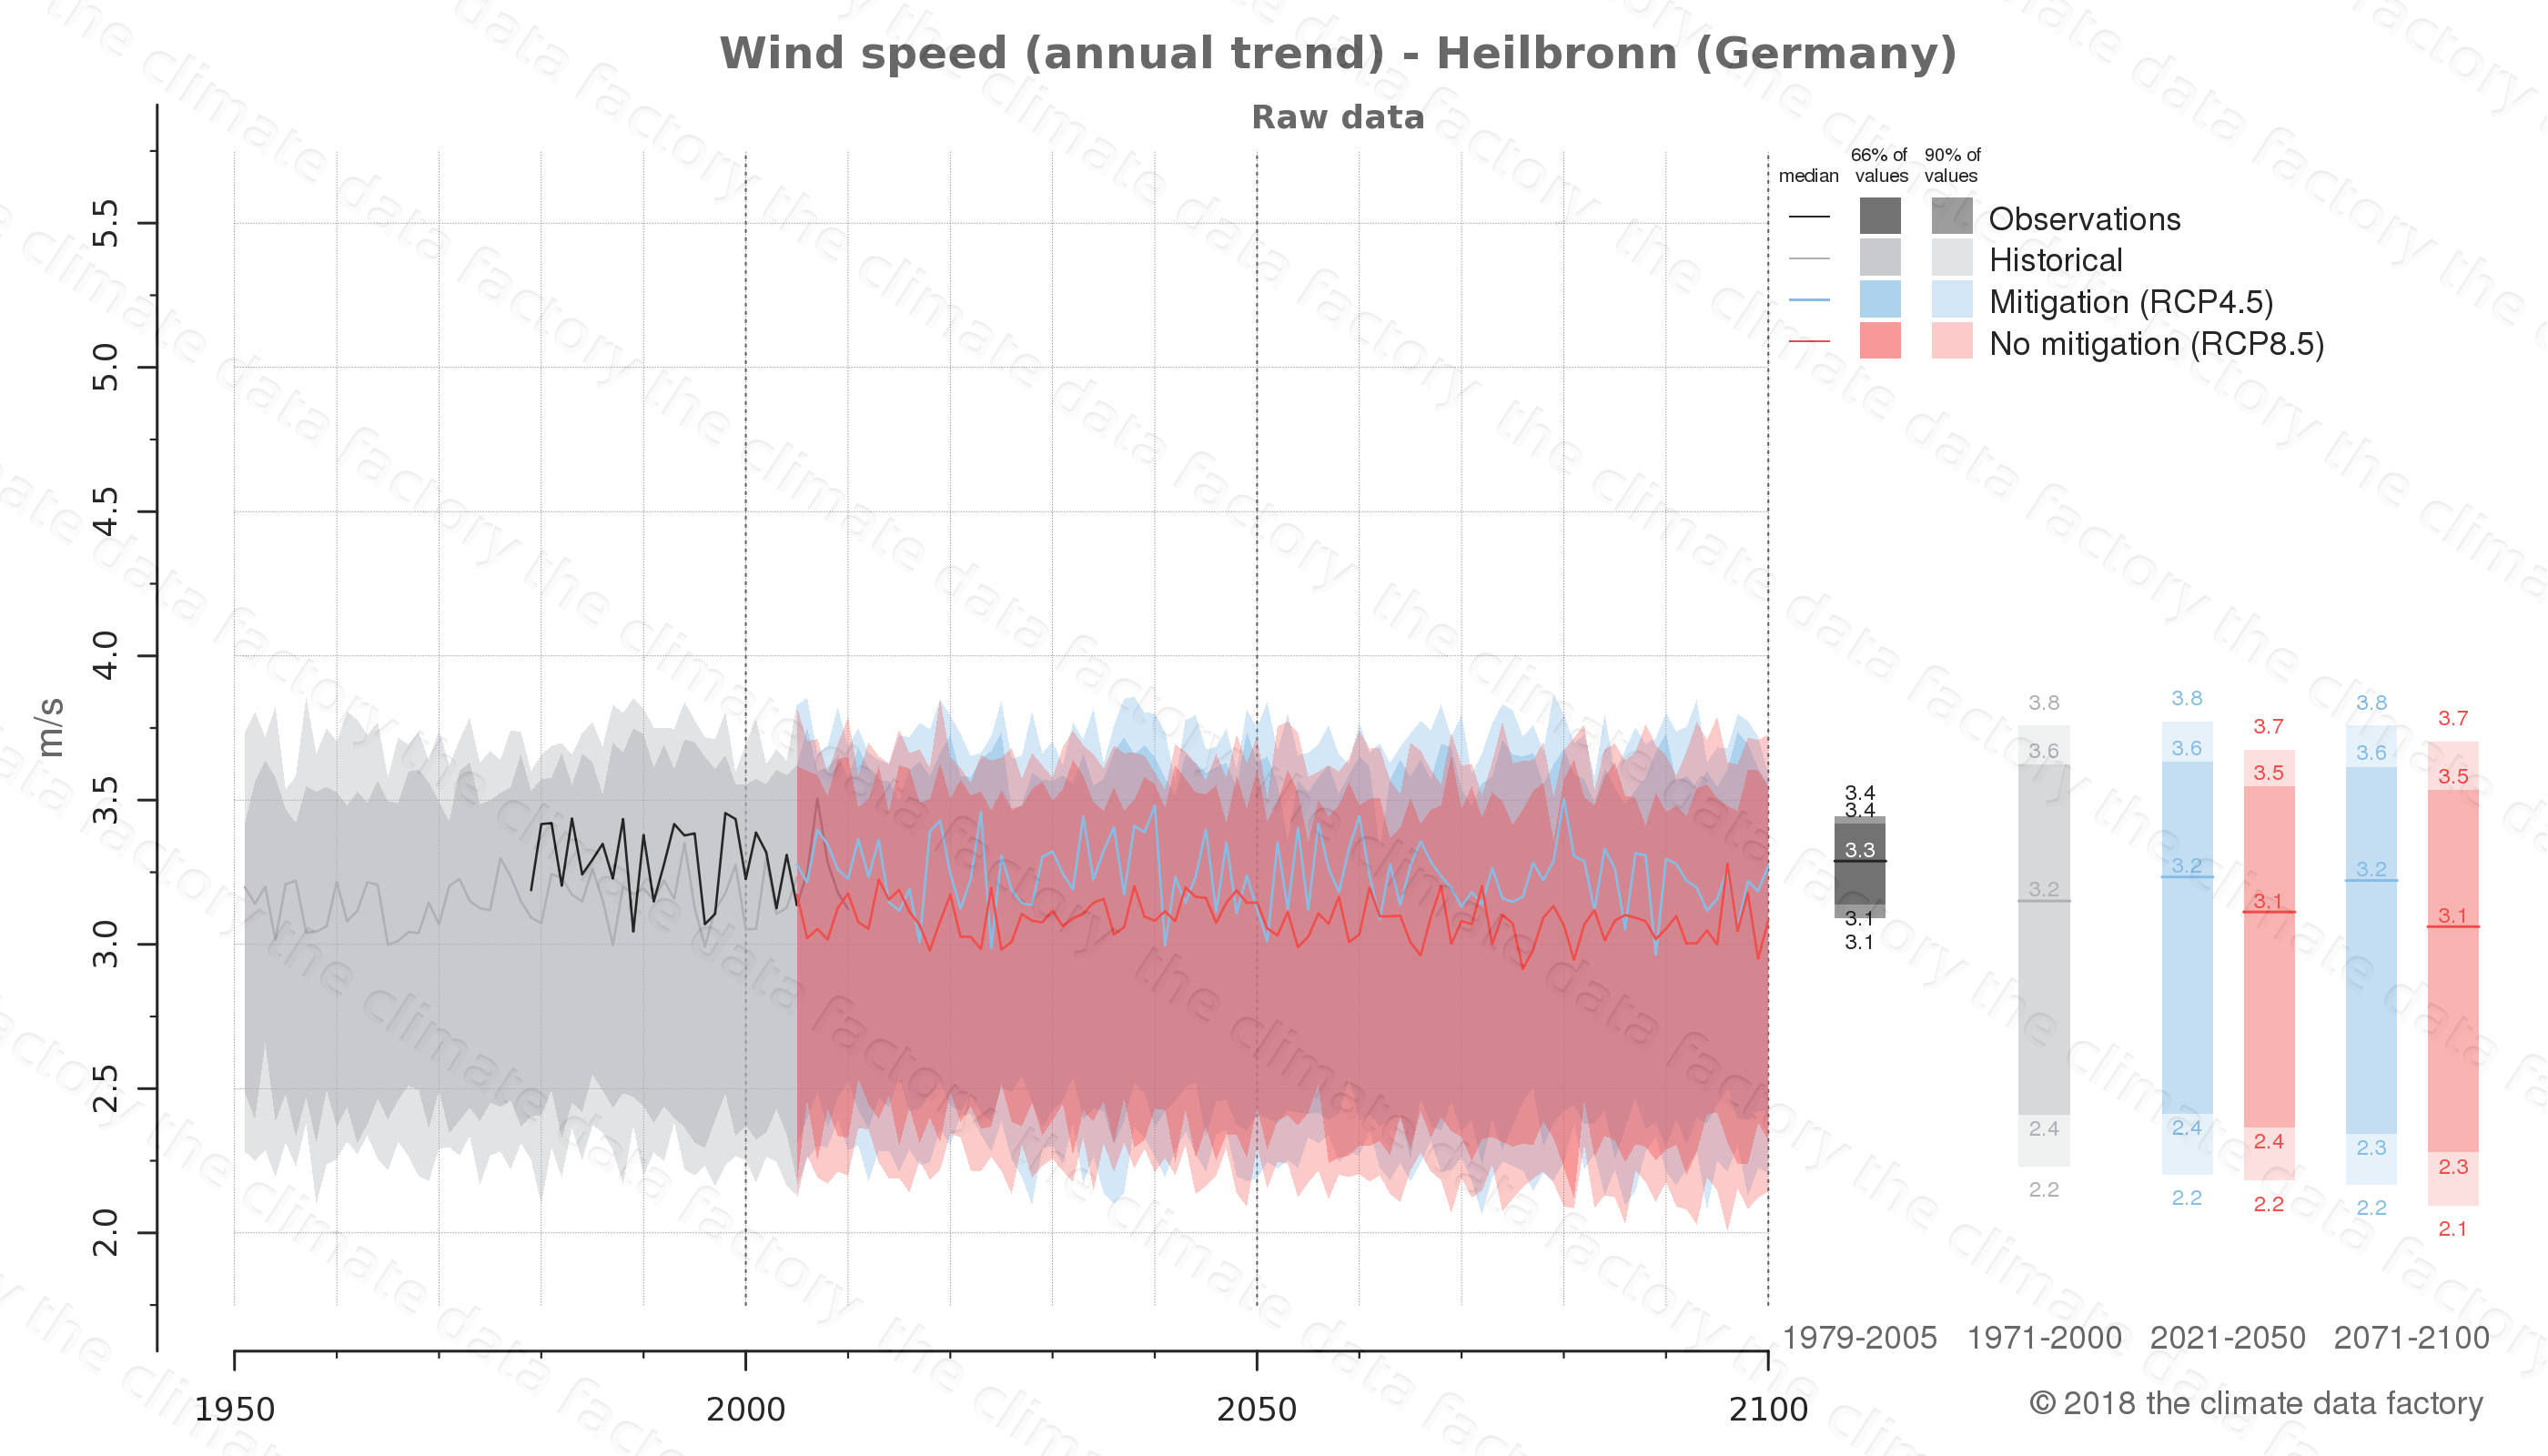 climate change data policy adaptation climate graph city data wind-speed heilbronn germany